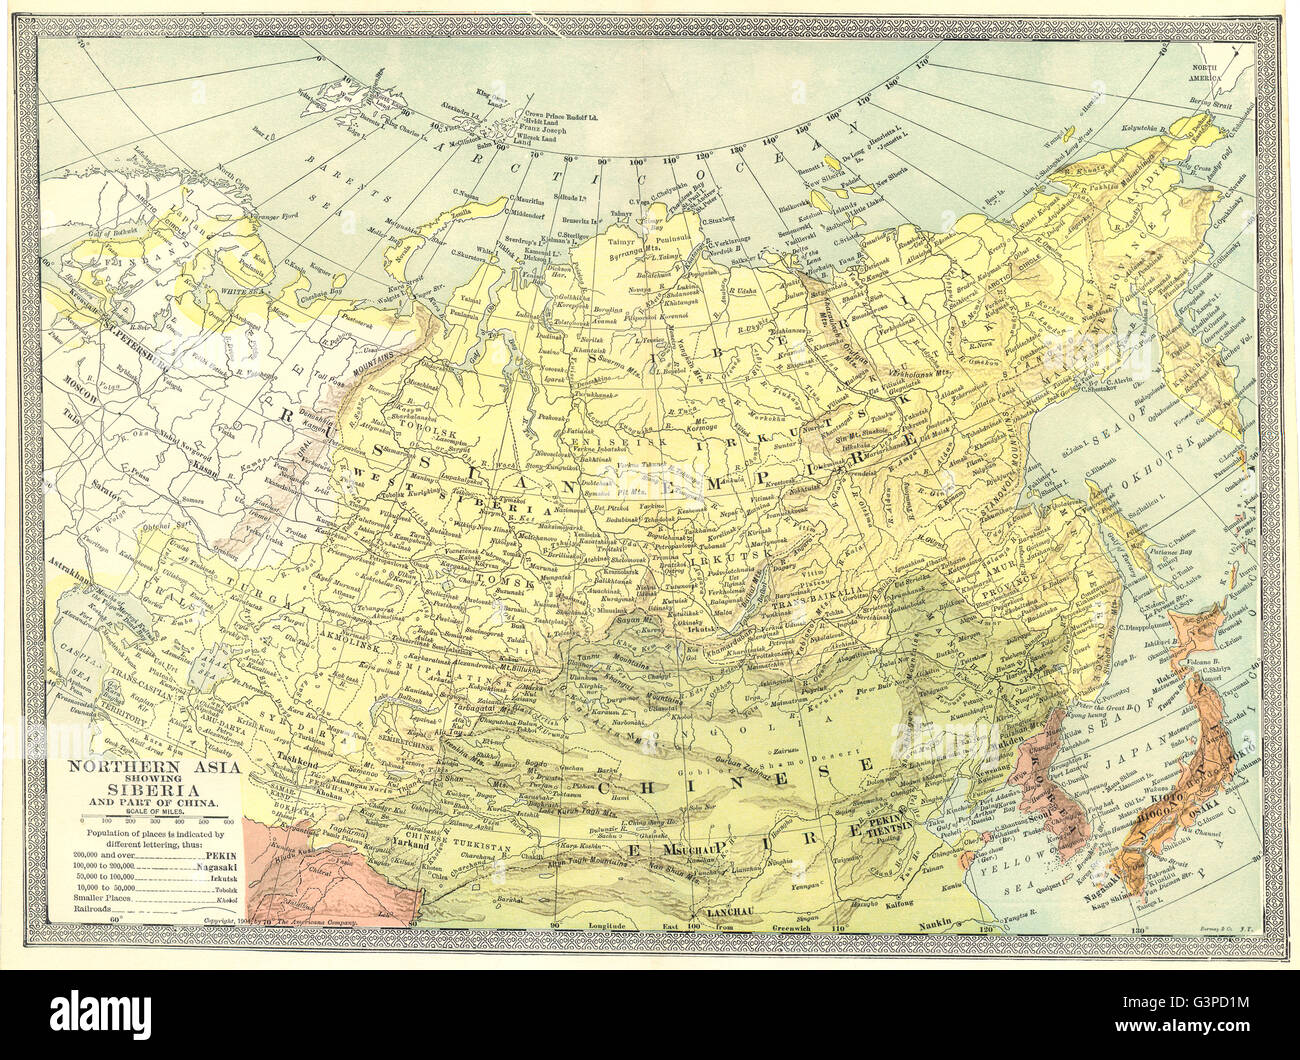 Northern asia siberia and part of china russia in asia 1907 stock siberia and part of china russia in asia 1907 antique map gumiabroncs Gallery